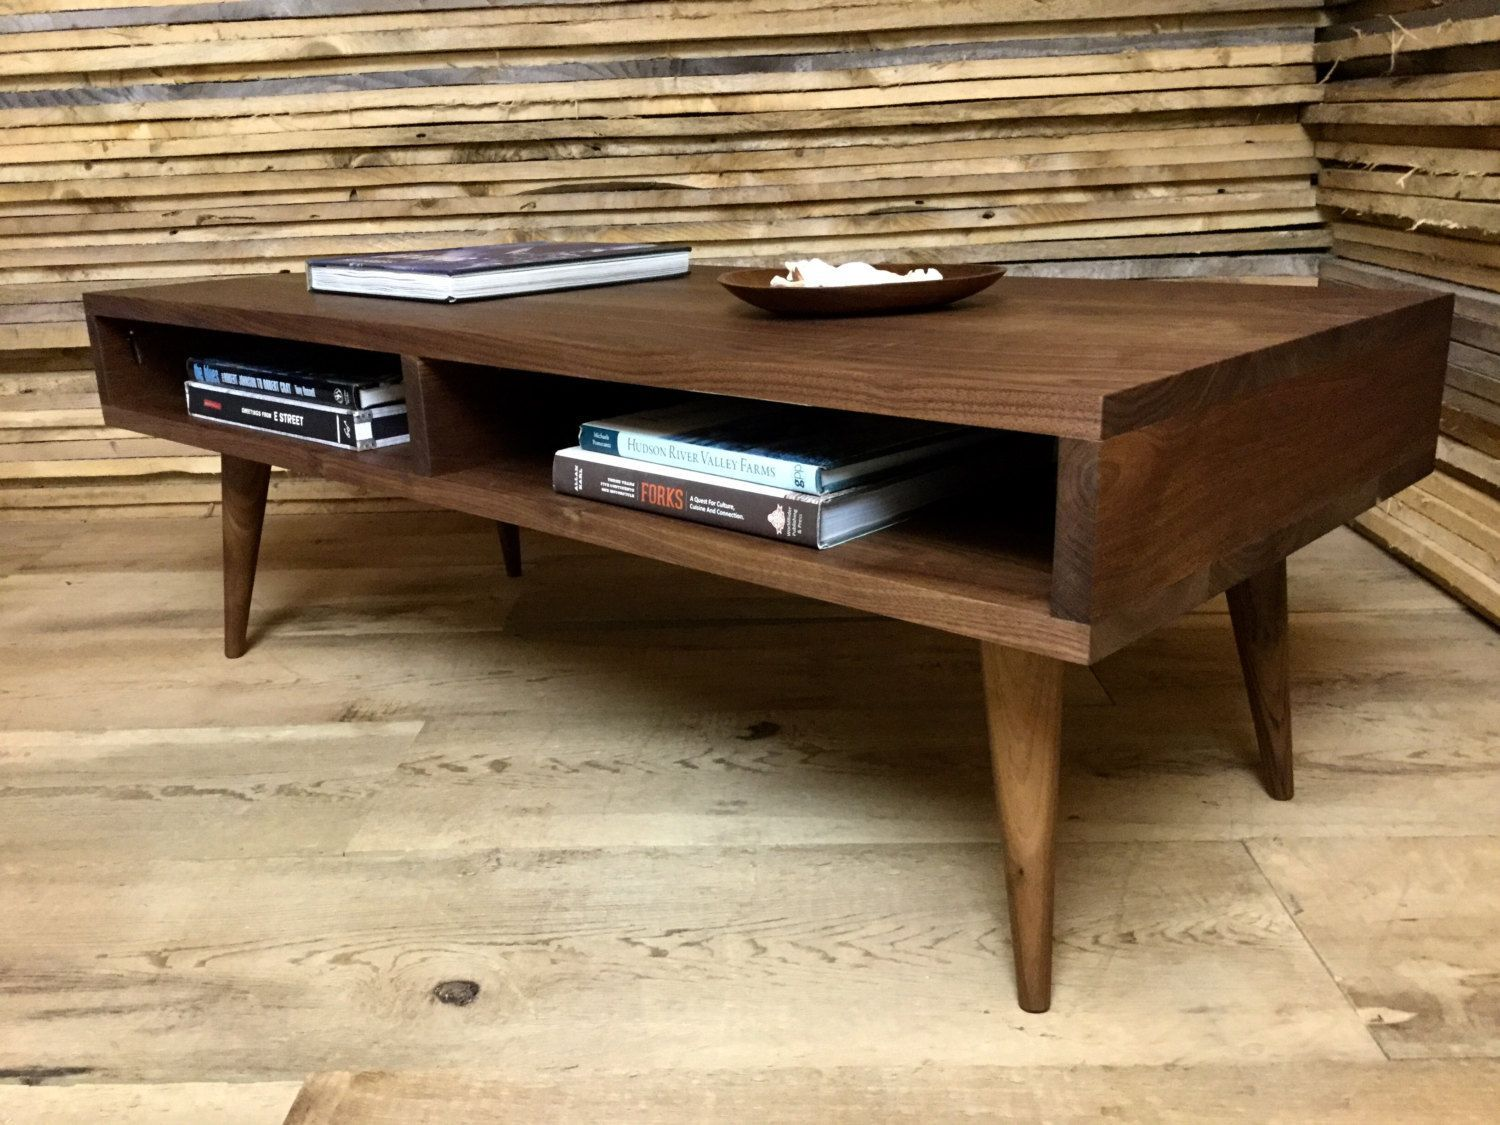 Boxer Mid Century Modern Coffee Table With Storage By Scottcassin Coffee Table Modern Coffee Table Decor Modern Wood Coffee Table [ 1125 x 1500 Pixel ]